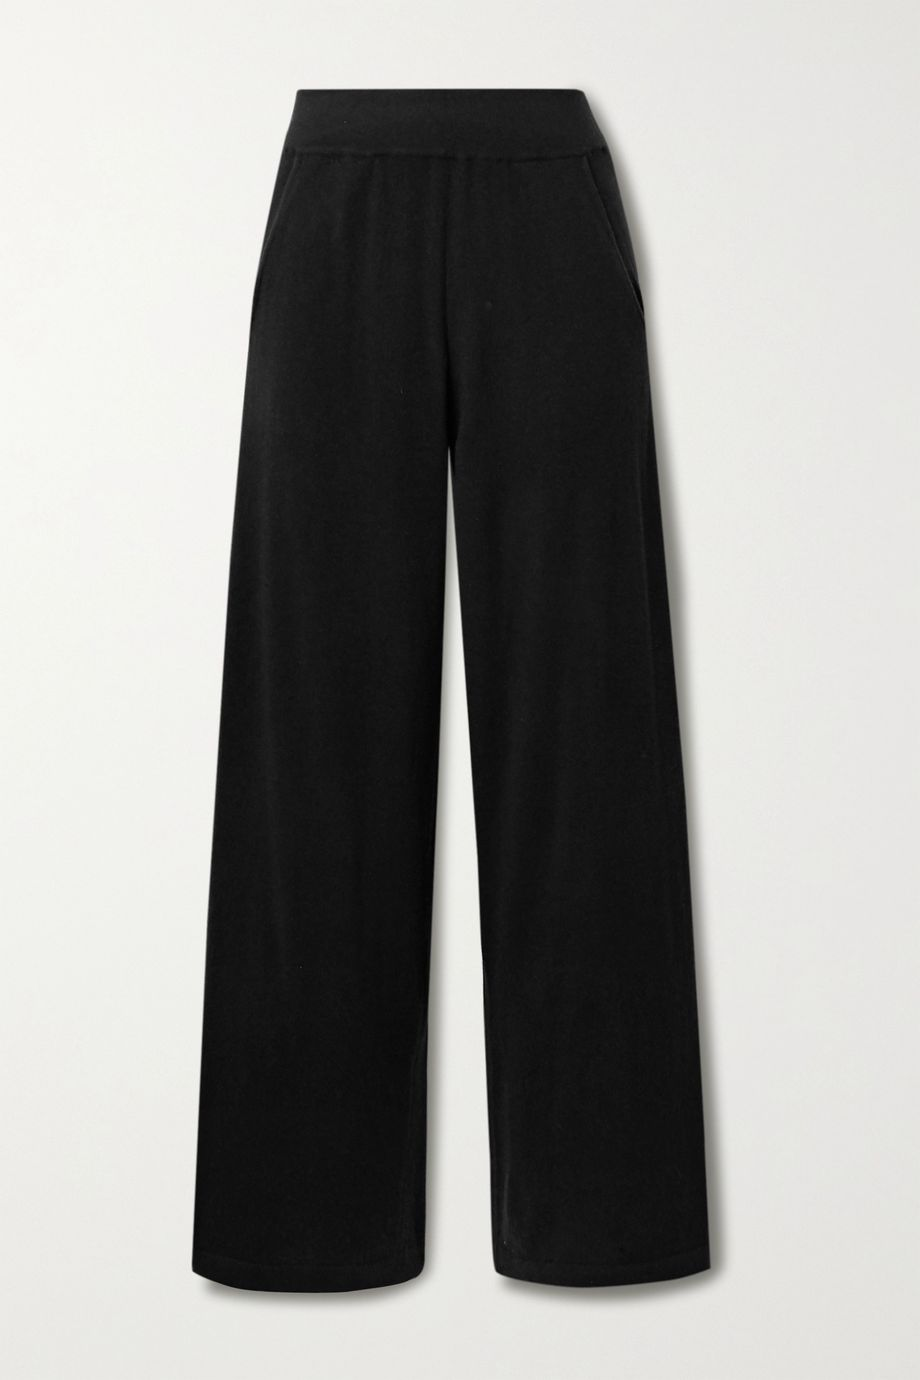 Arch4 Swing cashmere straight-leg pants